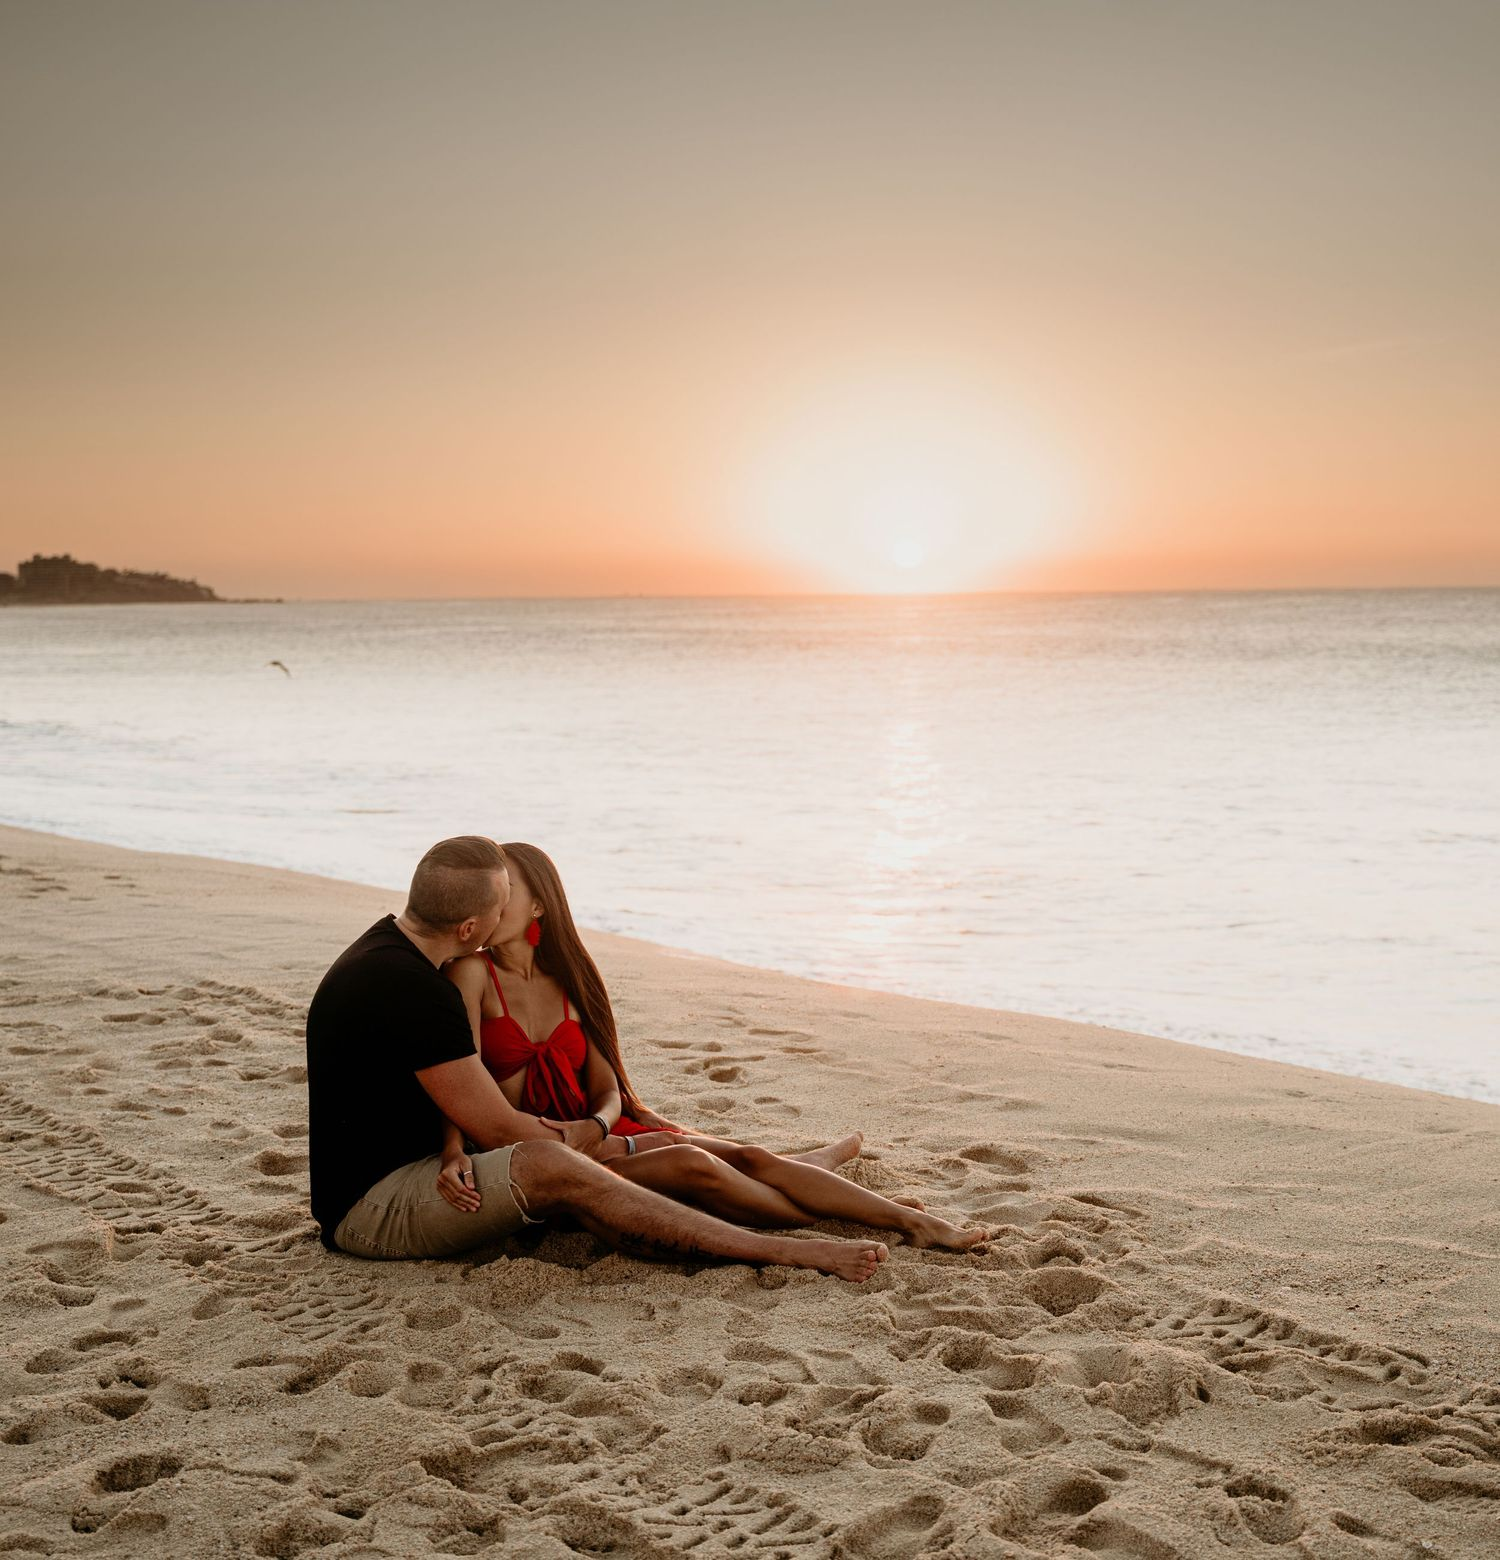 Husband and wife sitting on the beach during sunrise kissing.